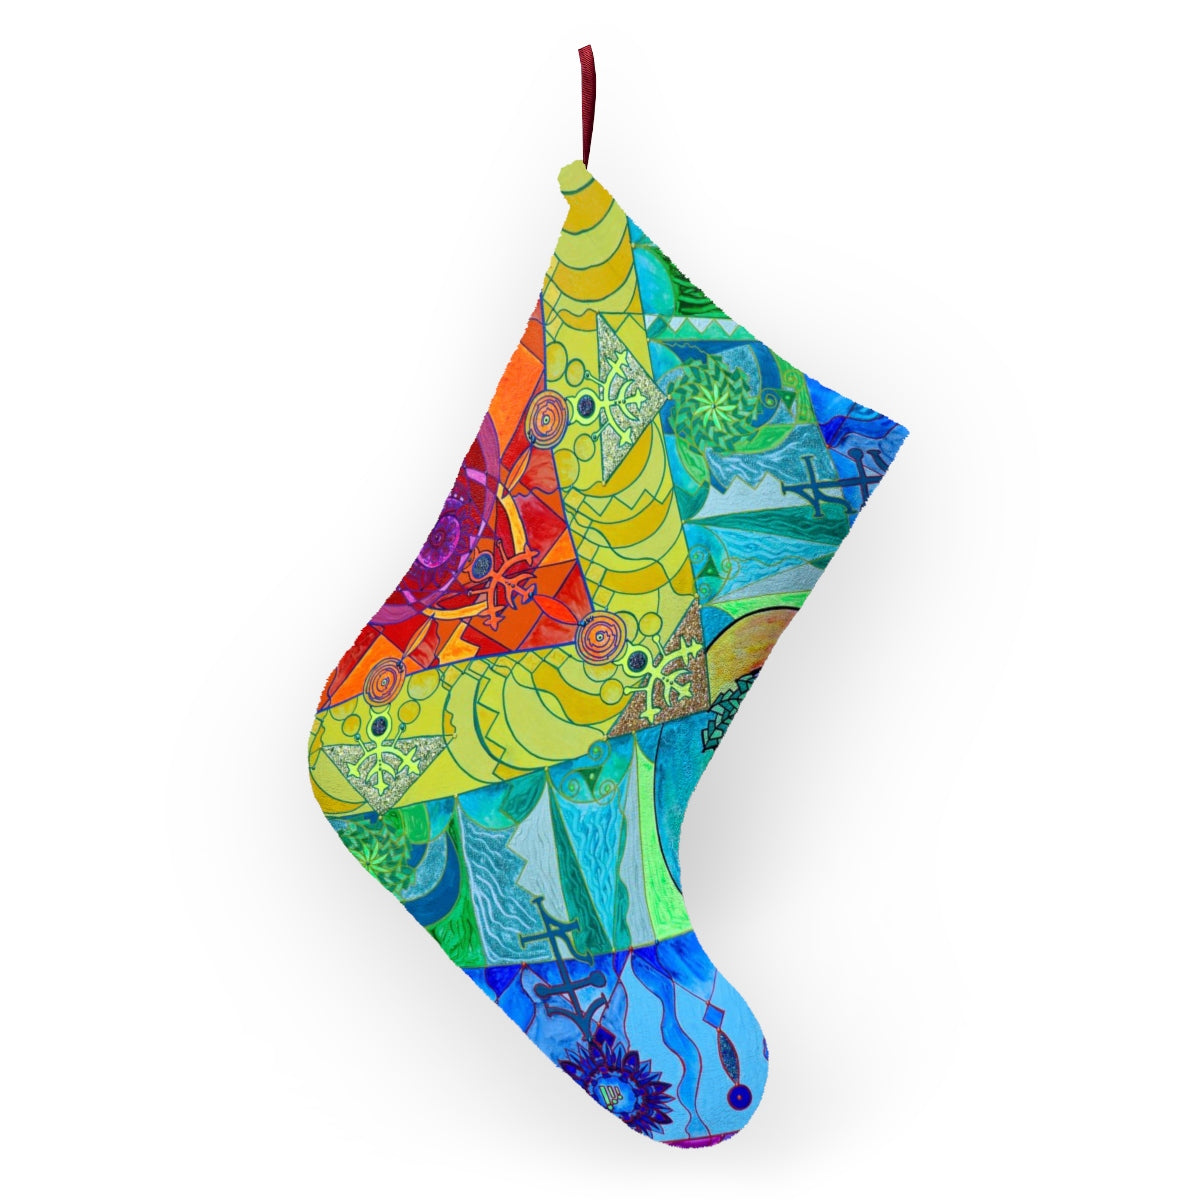 Expansion Pleiadian Lightwork Model - Christmas Stockings